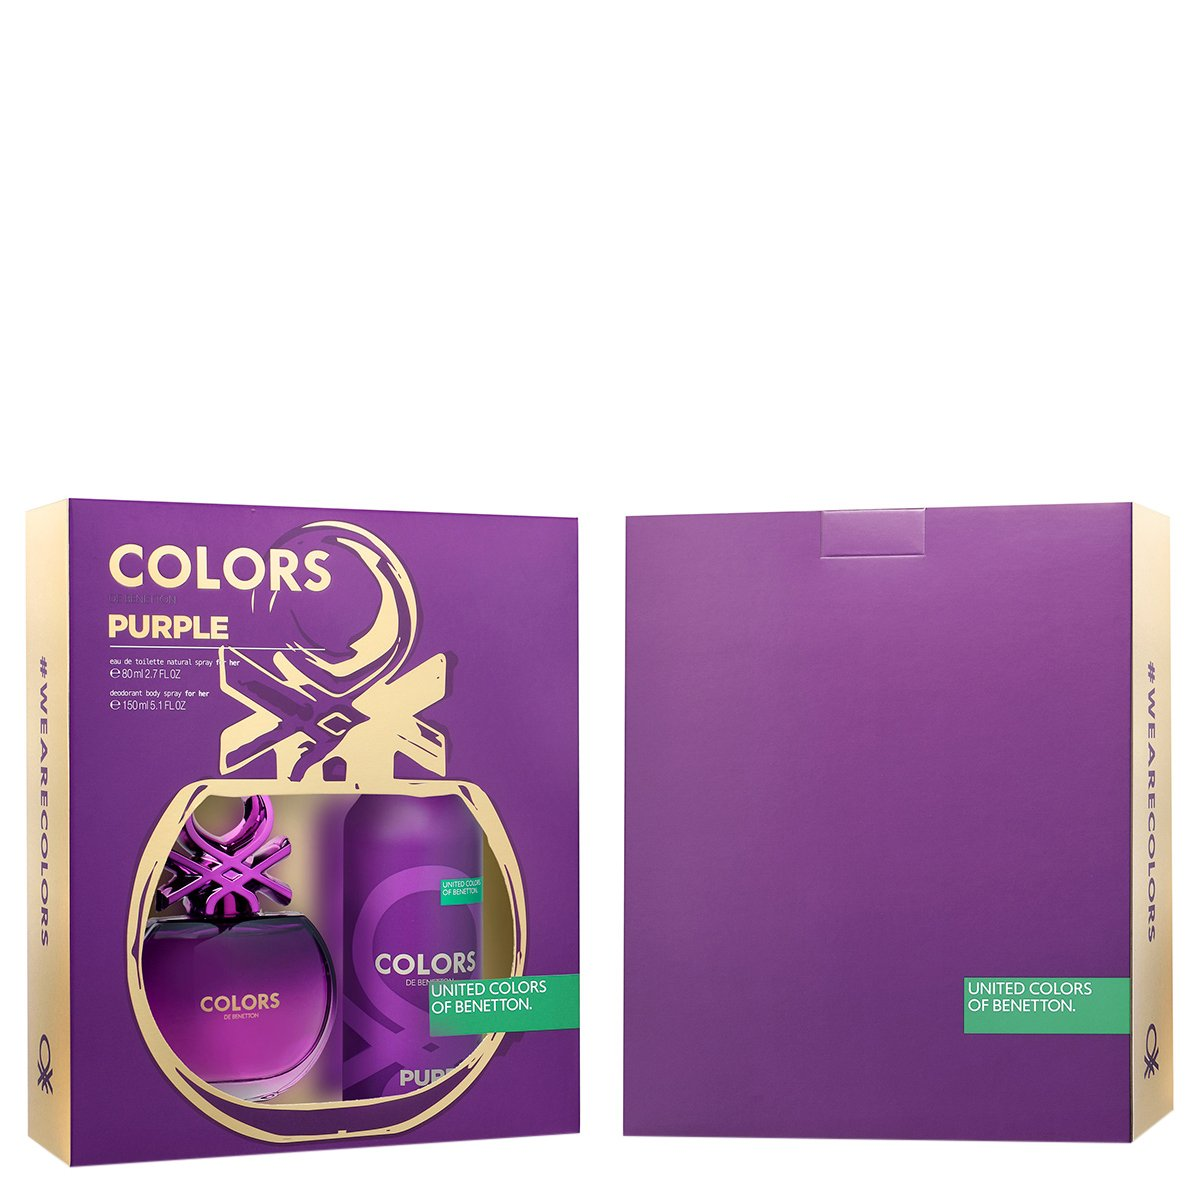 Kit Perfume Feminino Colors Purple Benetton Eau de Toilette 80ml + Desodorante 150ml